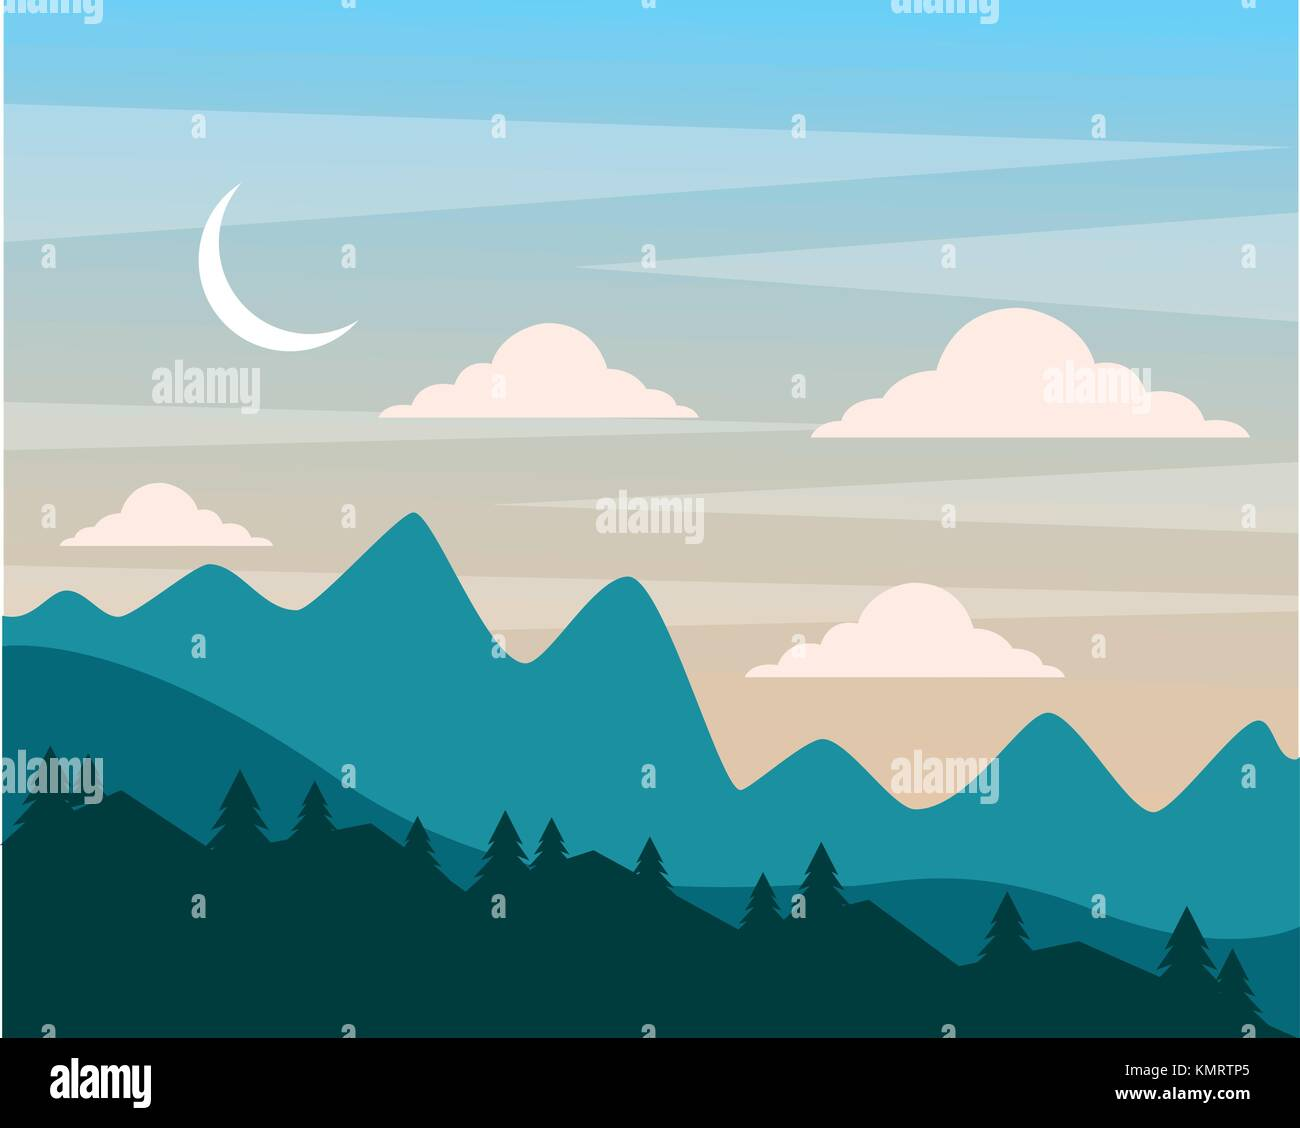 Night Hills Landscape Mountains Trees And Moon Clouds Sky